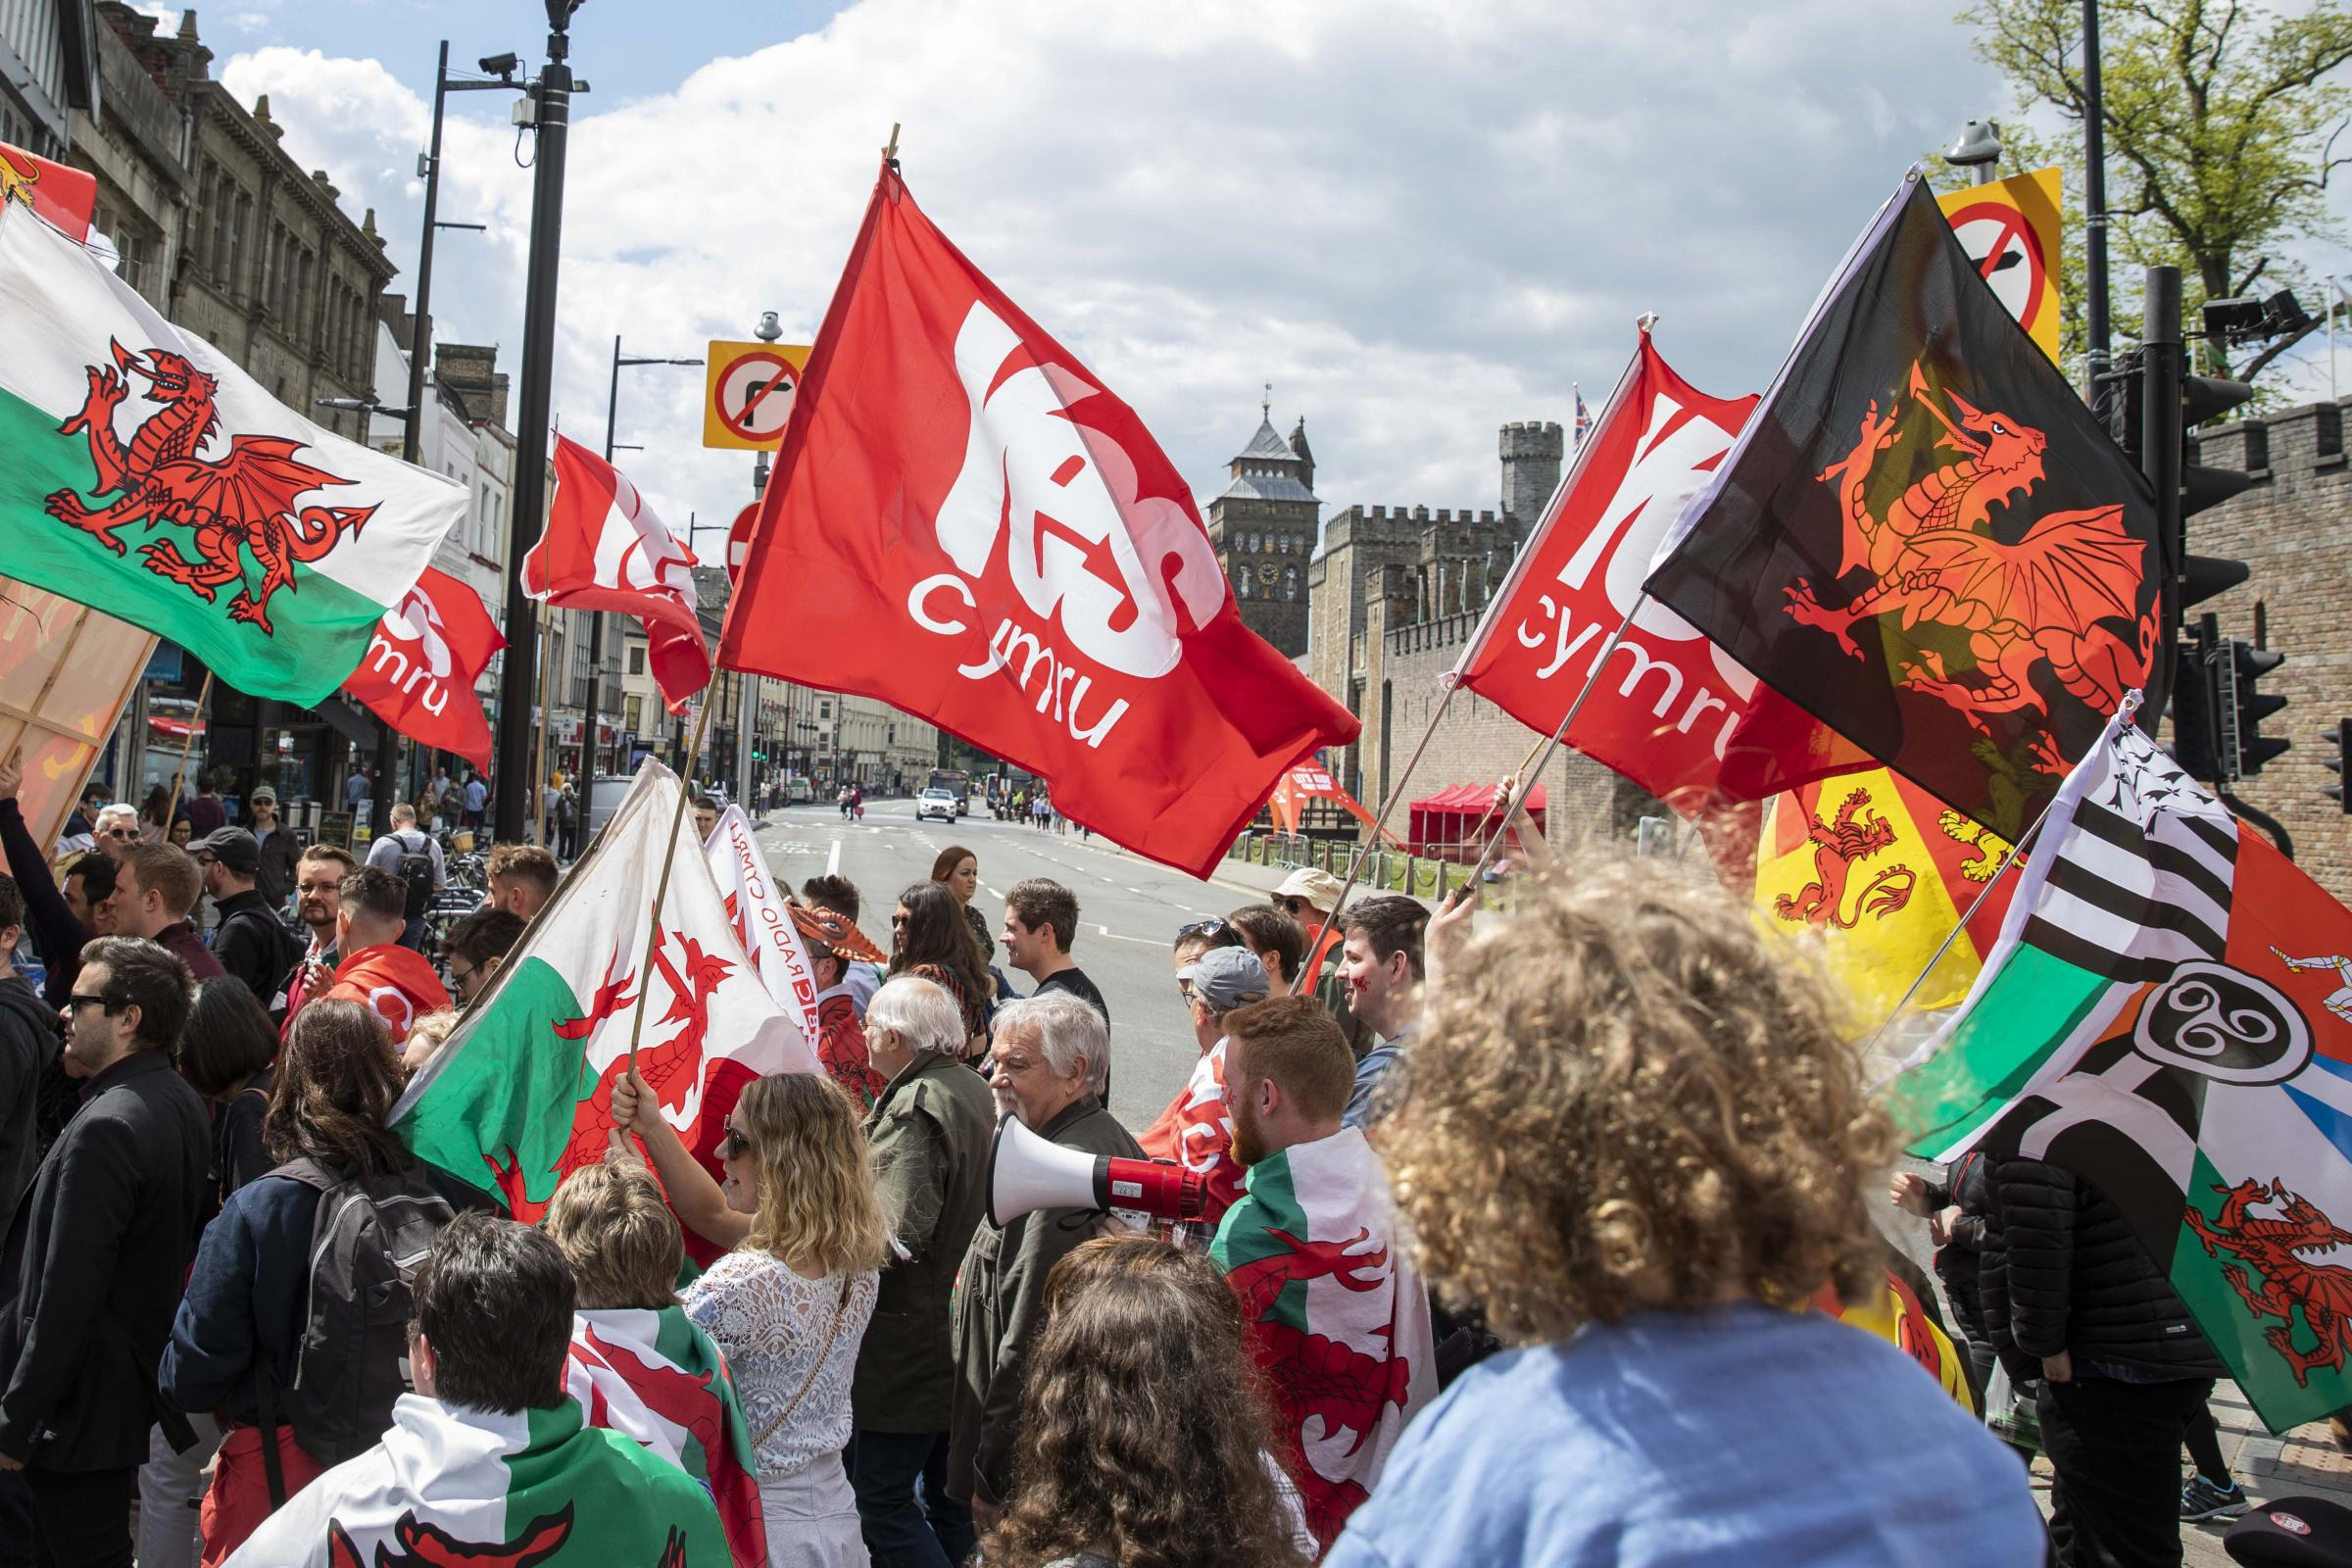 Welsh Labour's latest move offers lesson for the Yes movement in Scotland